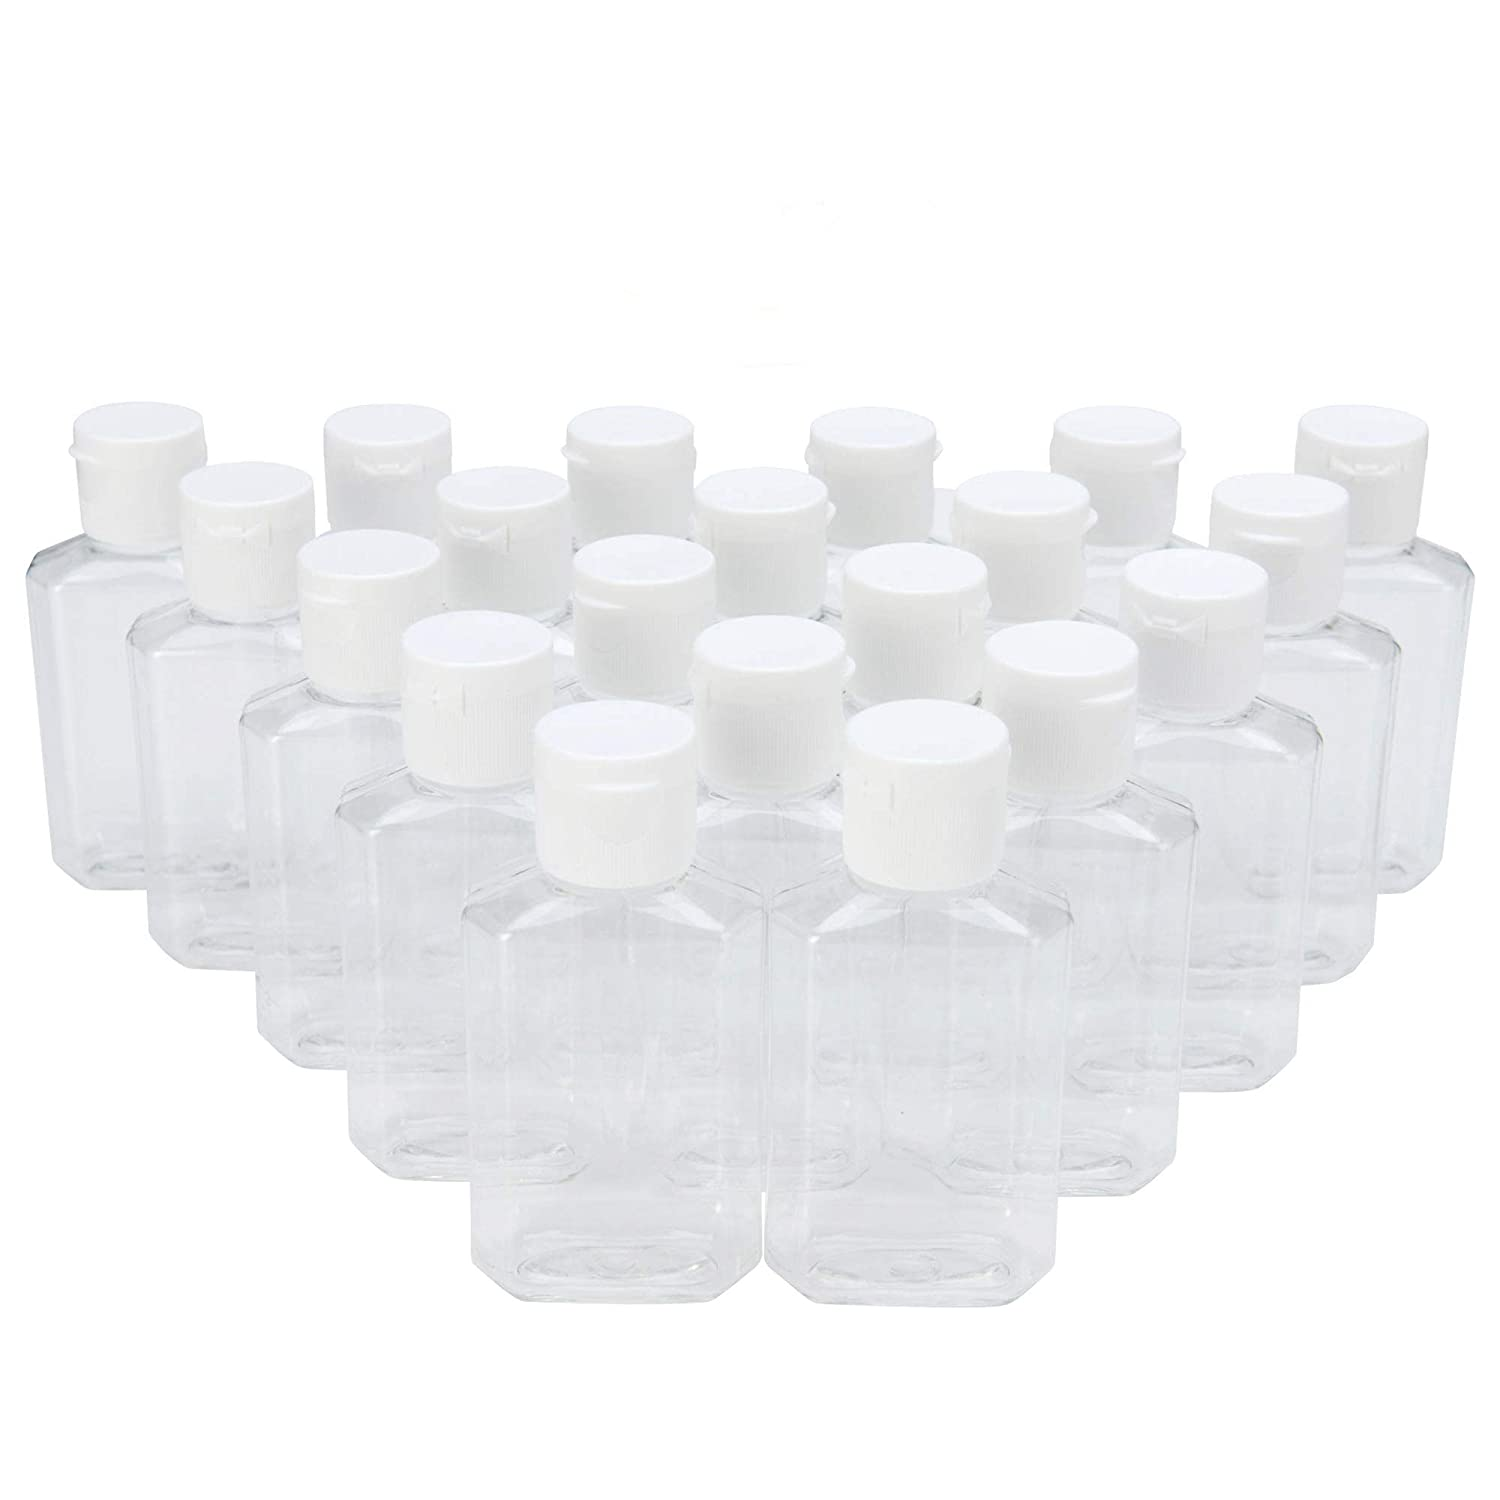 Mile High Online MHO Containers | Clear Refillable Flip-Top Bottles - BPA/Paraben Free 60mL/2oz- Set of 20